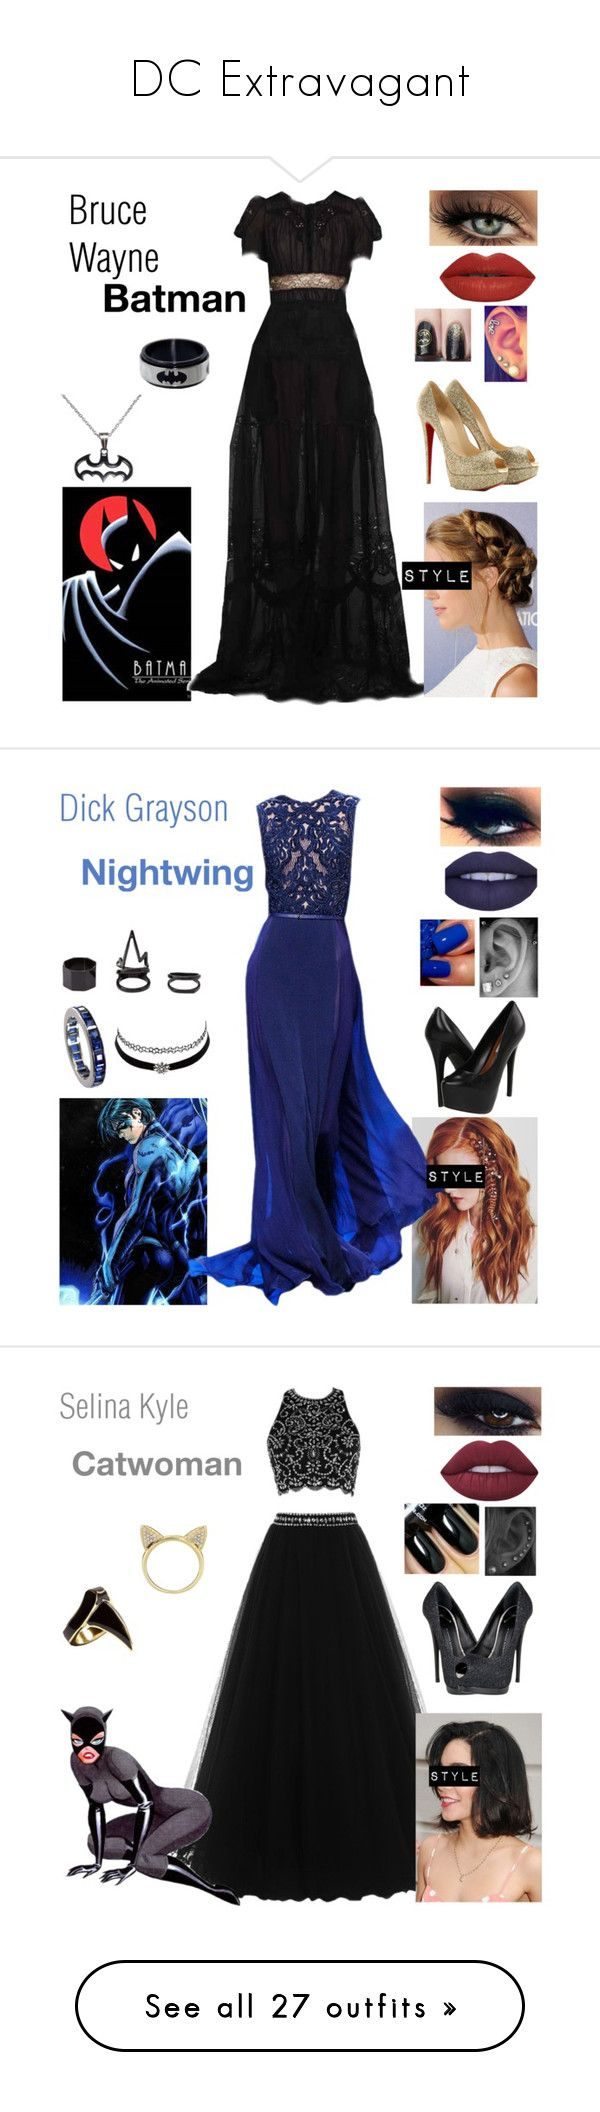 """""""DC Extravagant"""" by queenreigns-916 ❤ liked on Polyvore featuring Emilio Pucci, Christian Louboutin, The Lip Bar, Steve Madden, Cartier, Charlotte Russe, Giuseppe Zanotti, Lime Crime, Aamaya by Priyanka and DJ By Dominic Jones"""